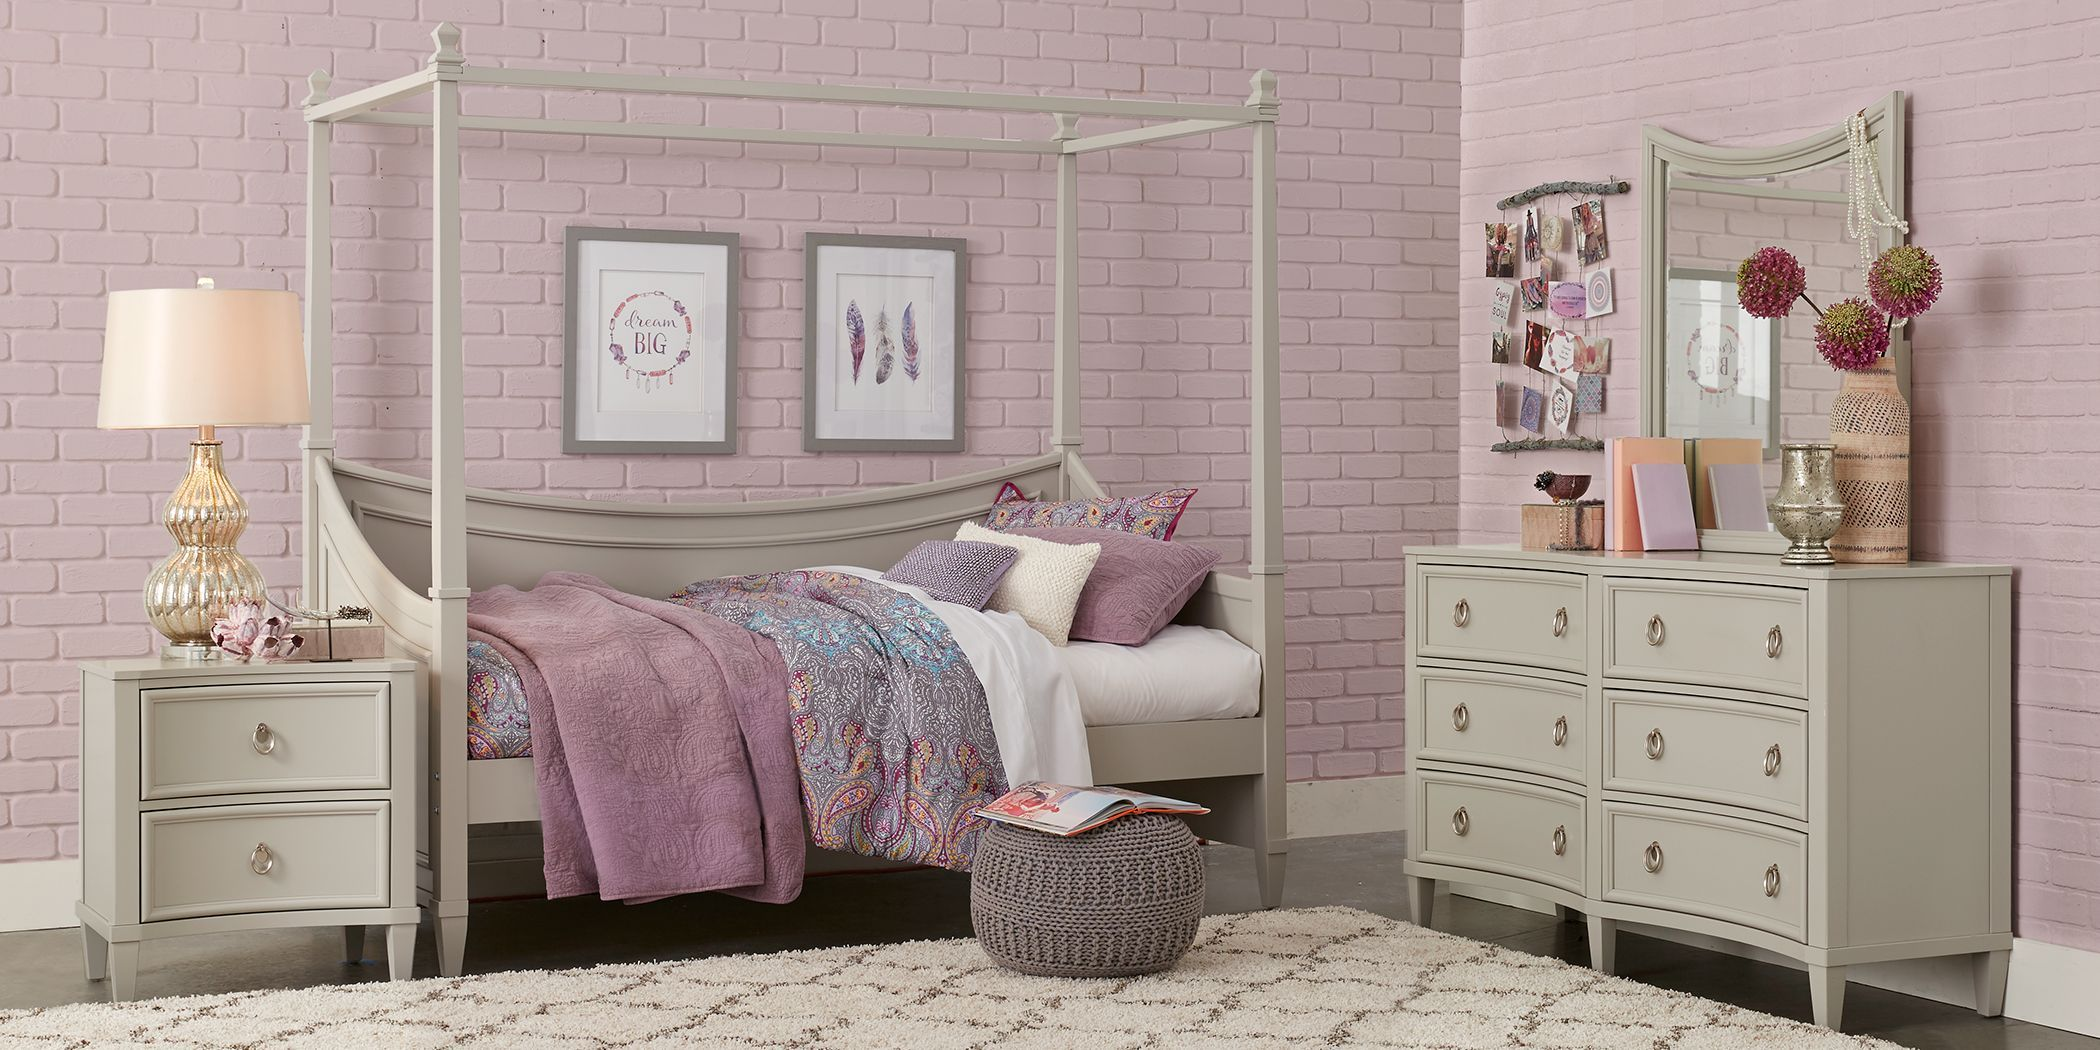 Jaclyn Place Gray 4 Pc Canopy Daybed Bedroom Home decor